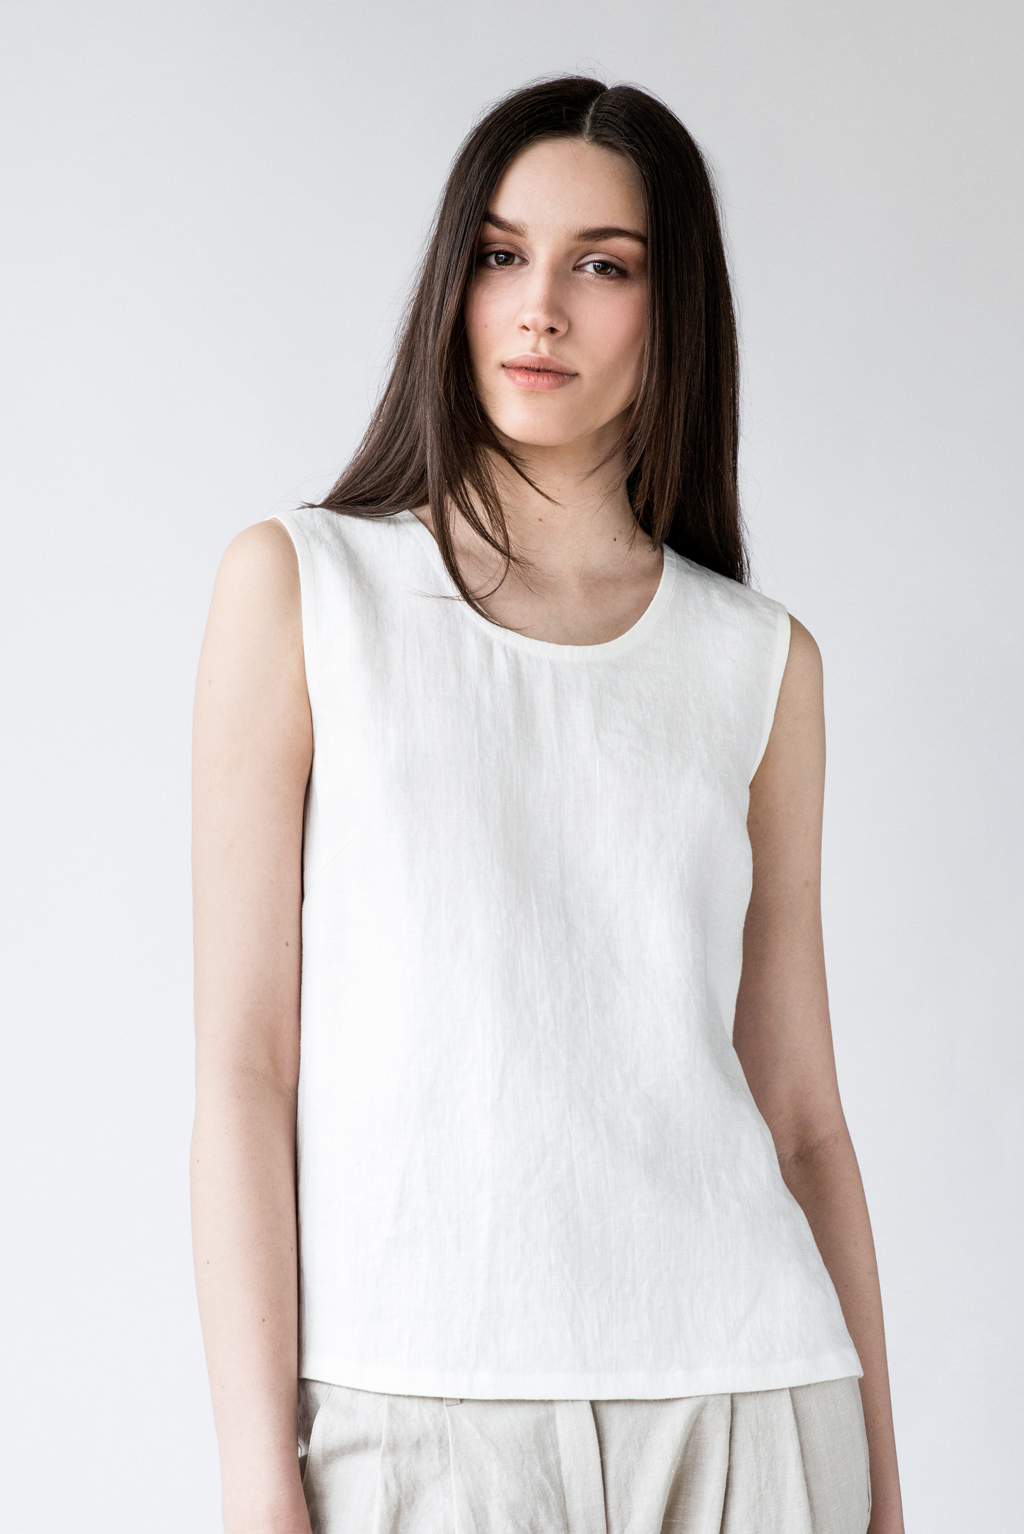 Eva tank top in white color by Ode to Sunday